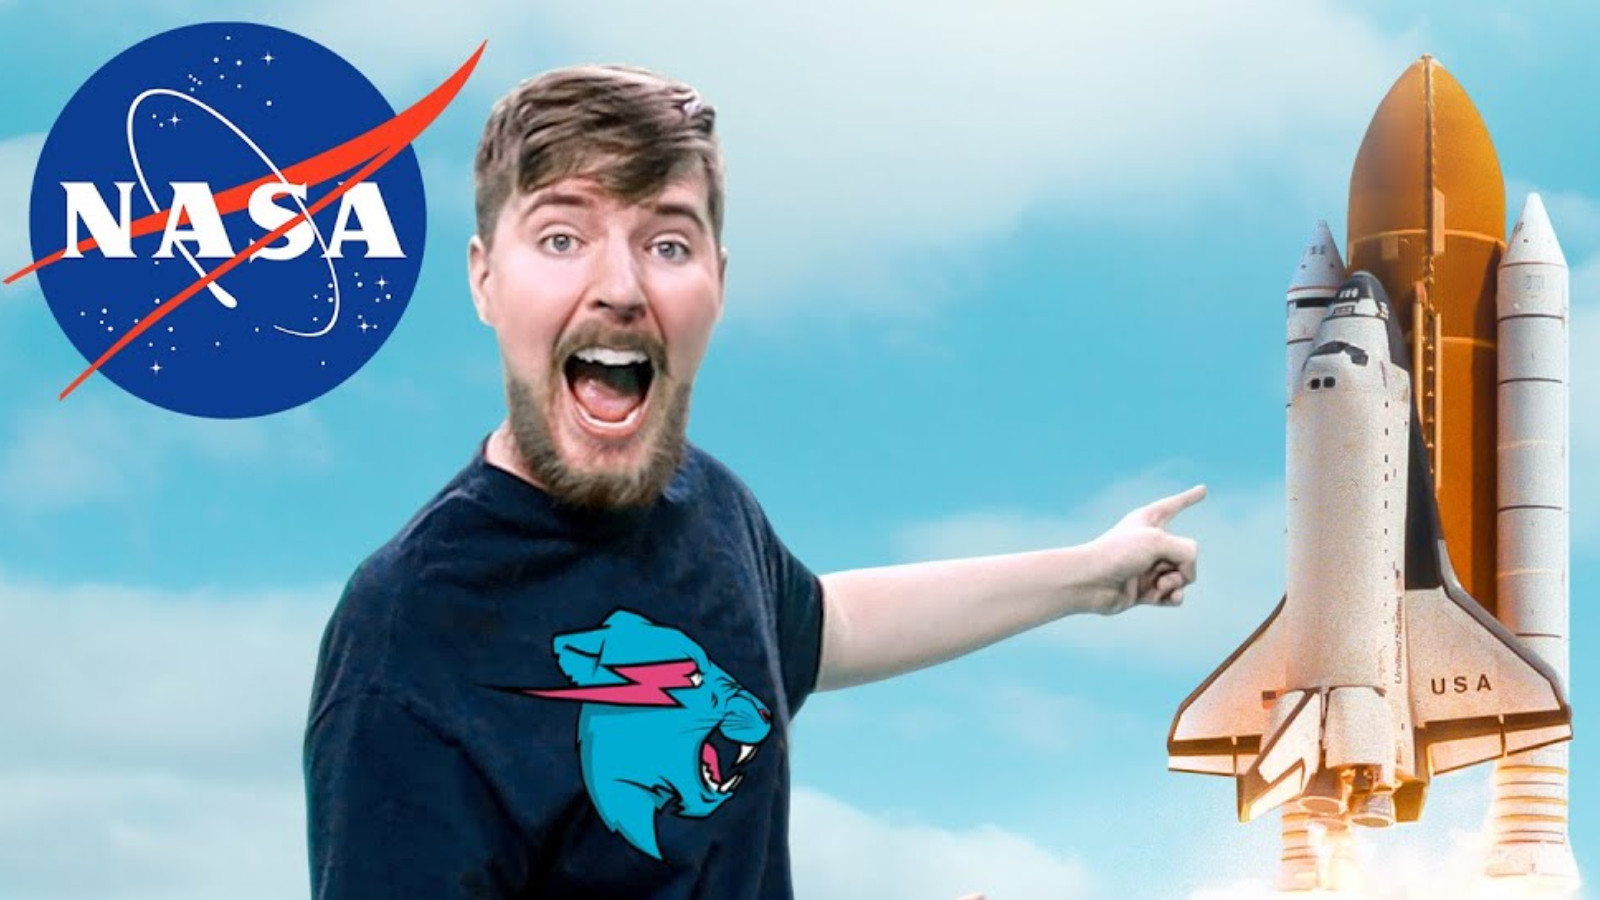 MrBeast will literally send your message to the moon: How to get in